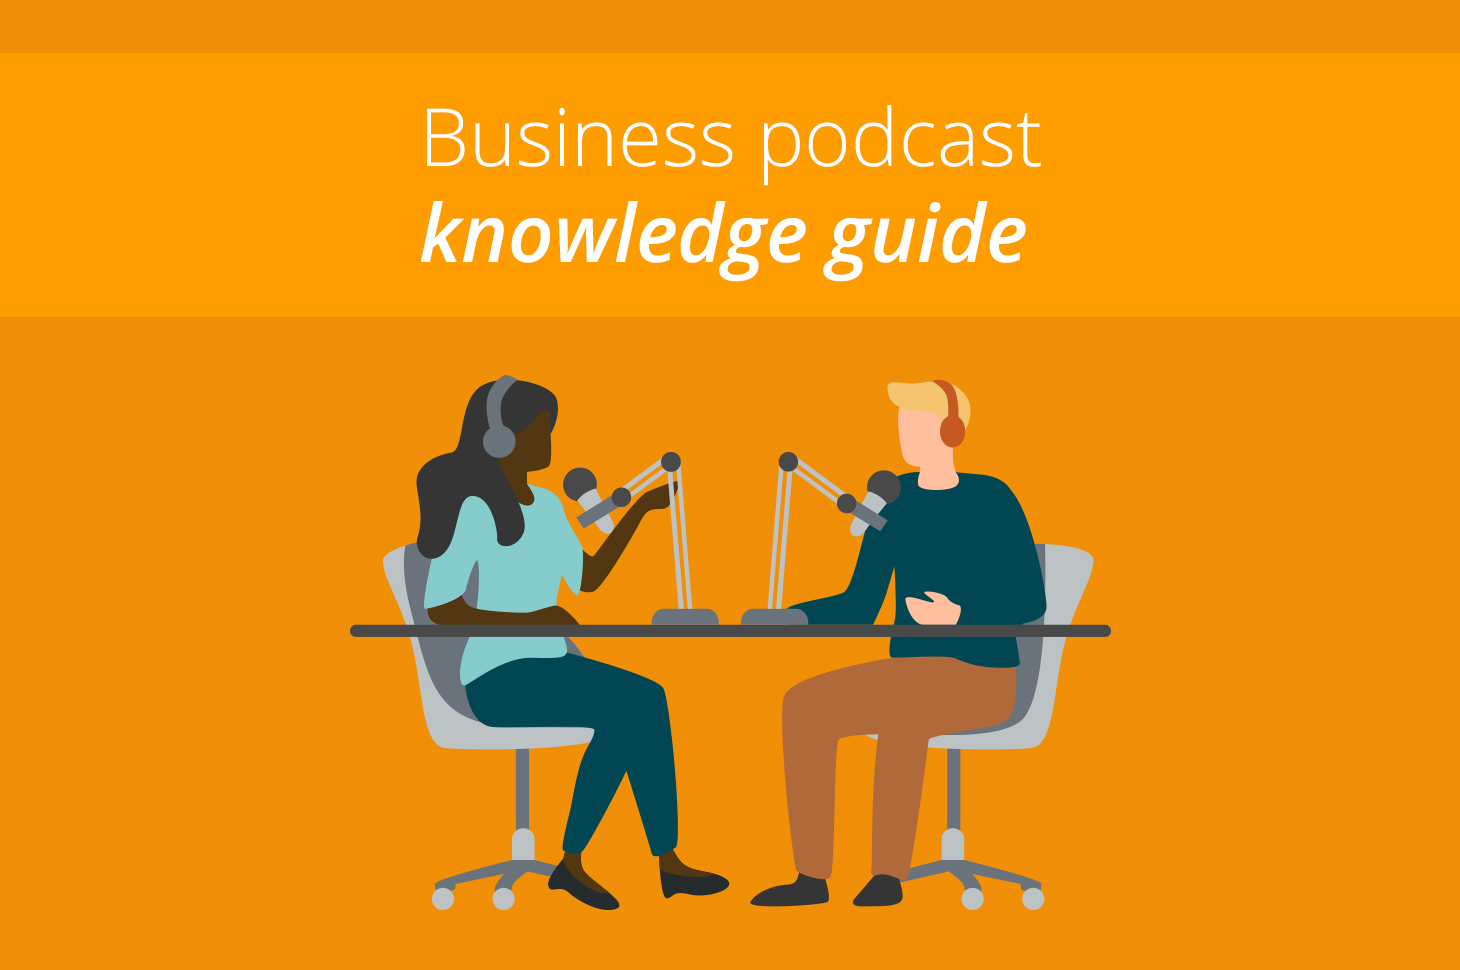 BizPodcastKnowledgeGuide_1460x970